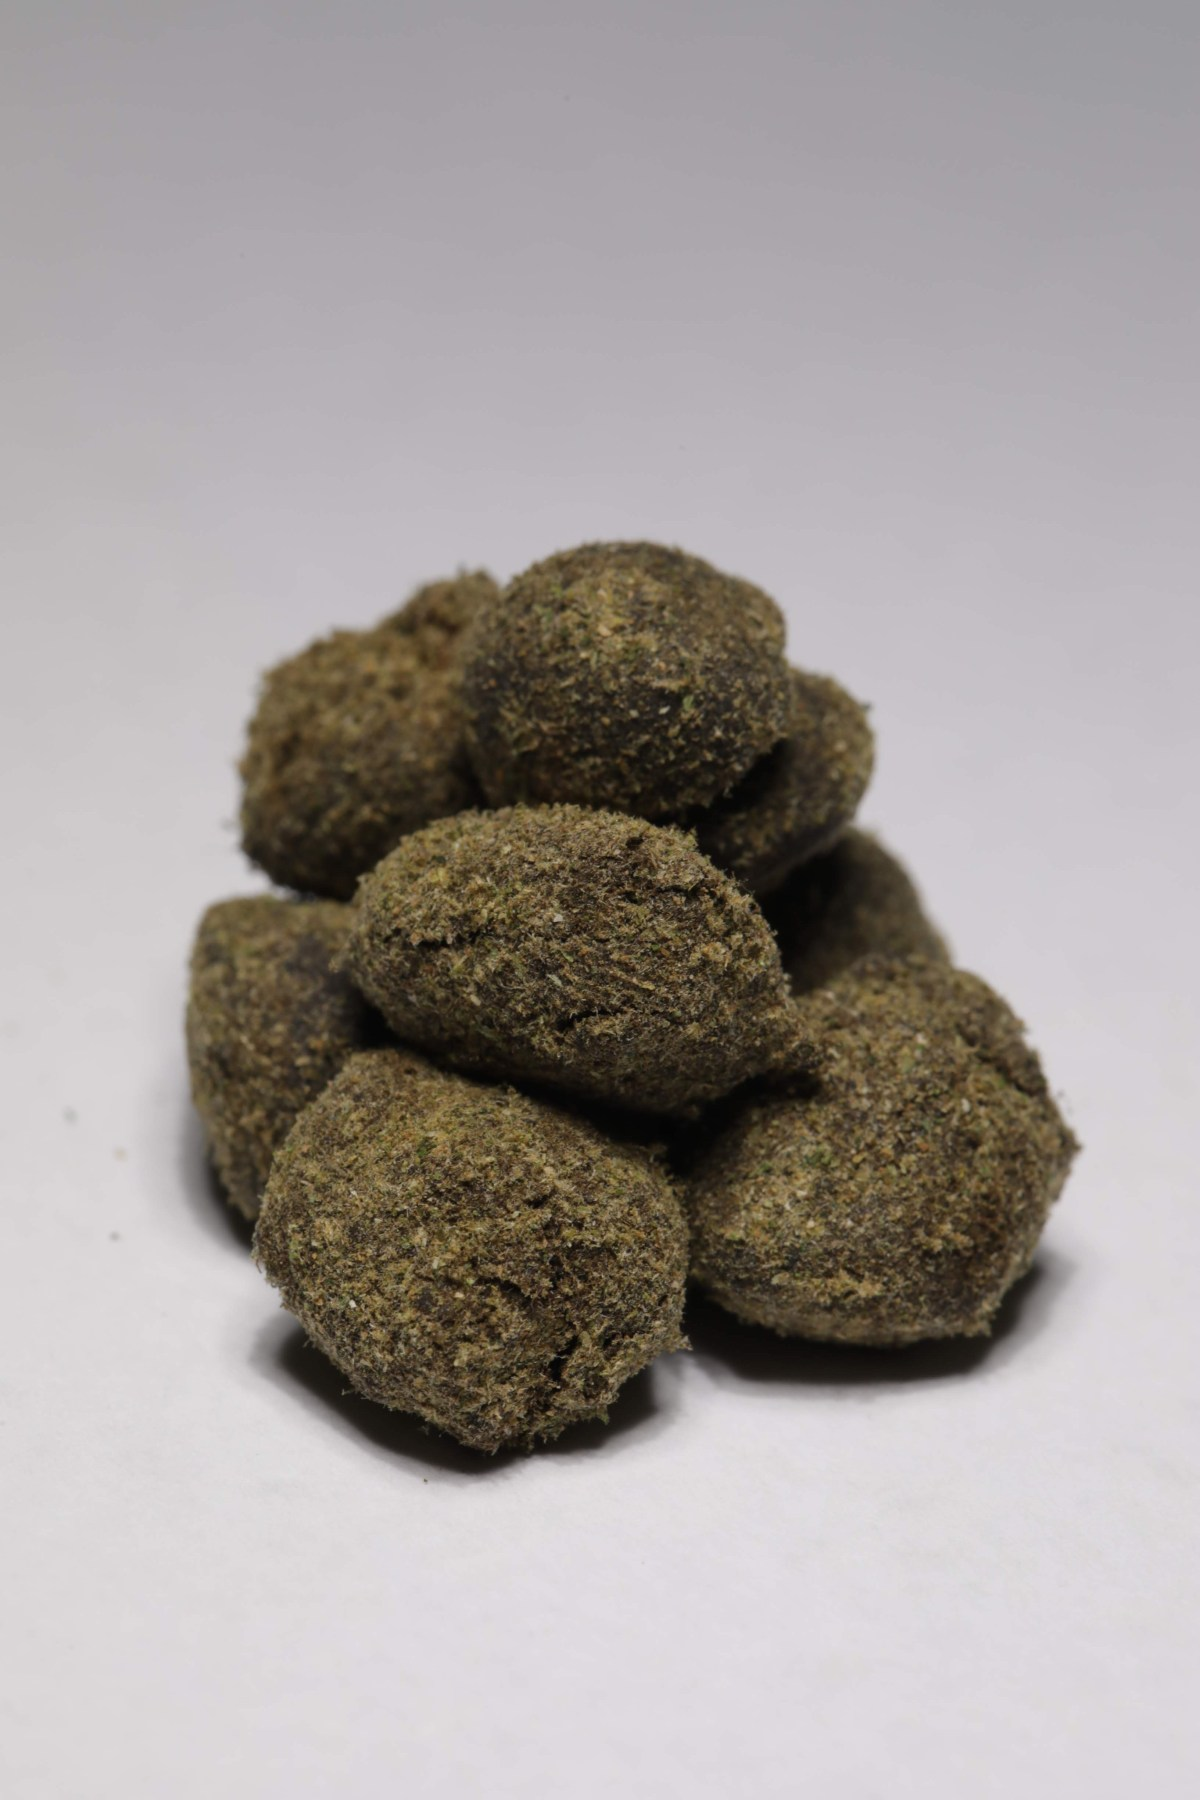 image of a pile of cbd moon rocks